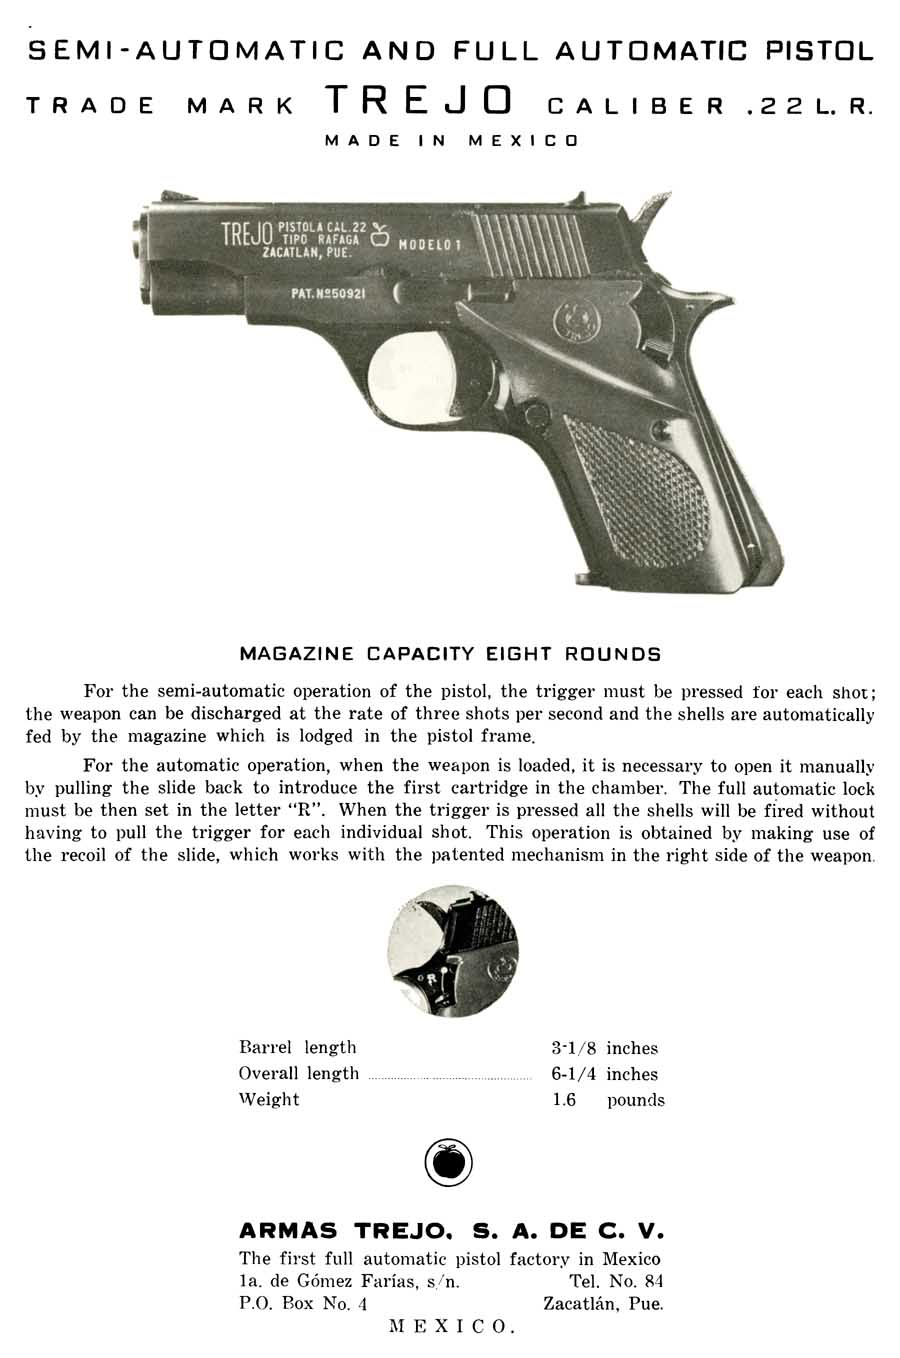 Modelo 1 c1963 22 cal Semi-Full Automatic Pistol Parts Flyer Armas Trejo (Mexico)